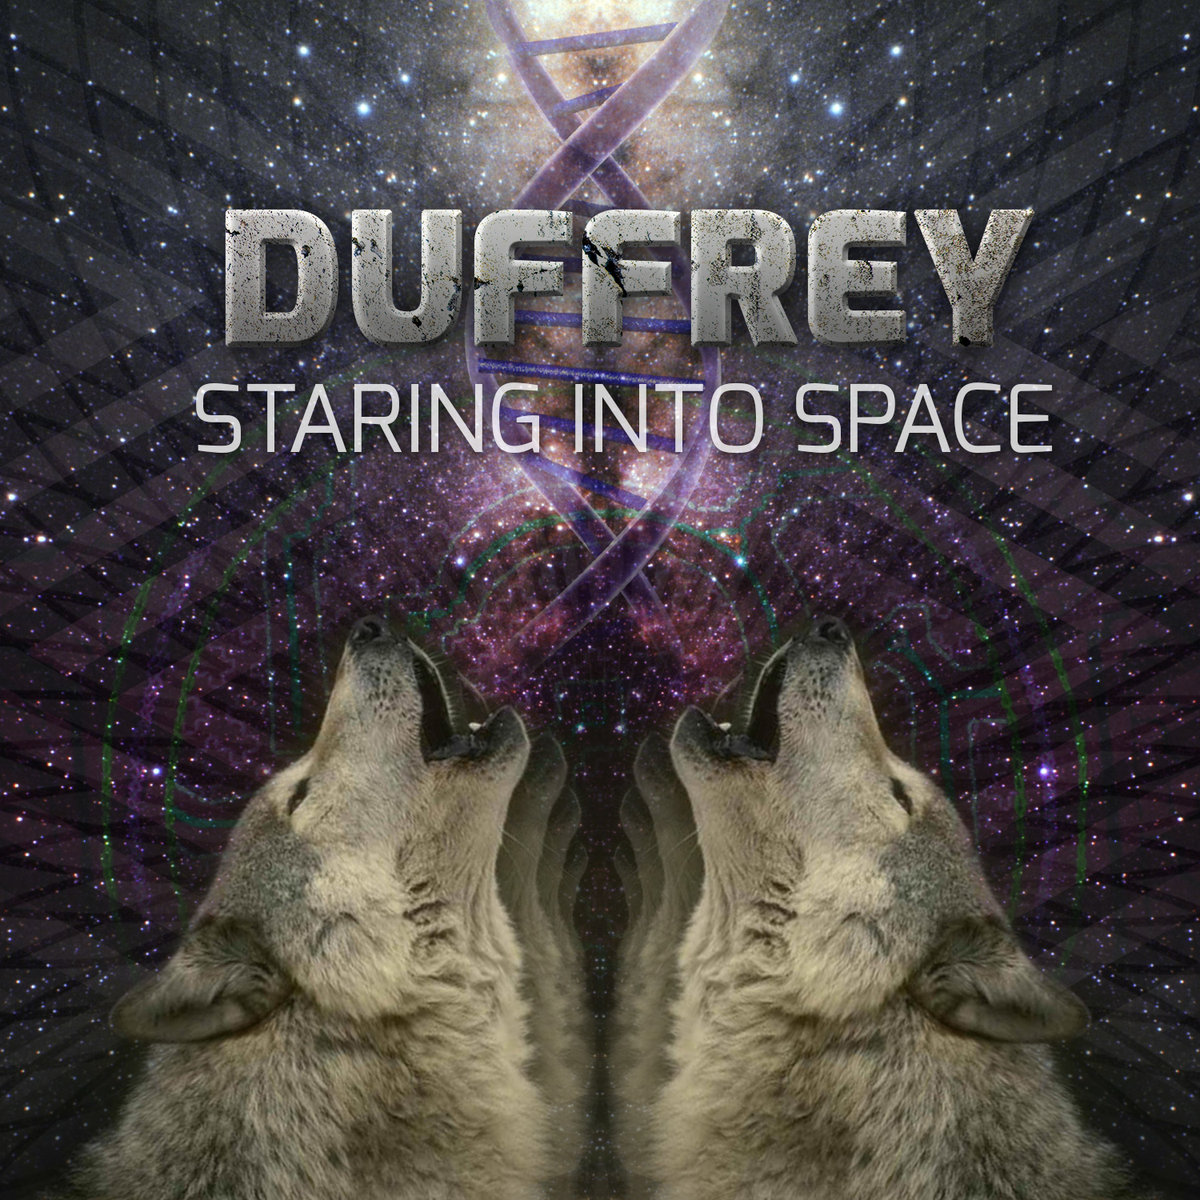 Duffrey - Biognome @ 'Staring Into Space' album (bass, breaks)